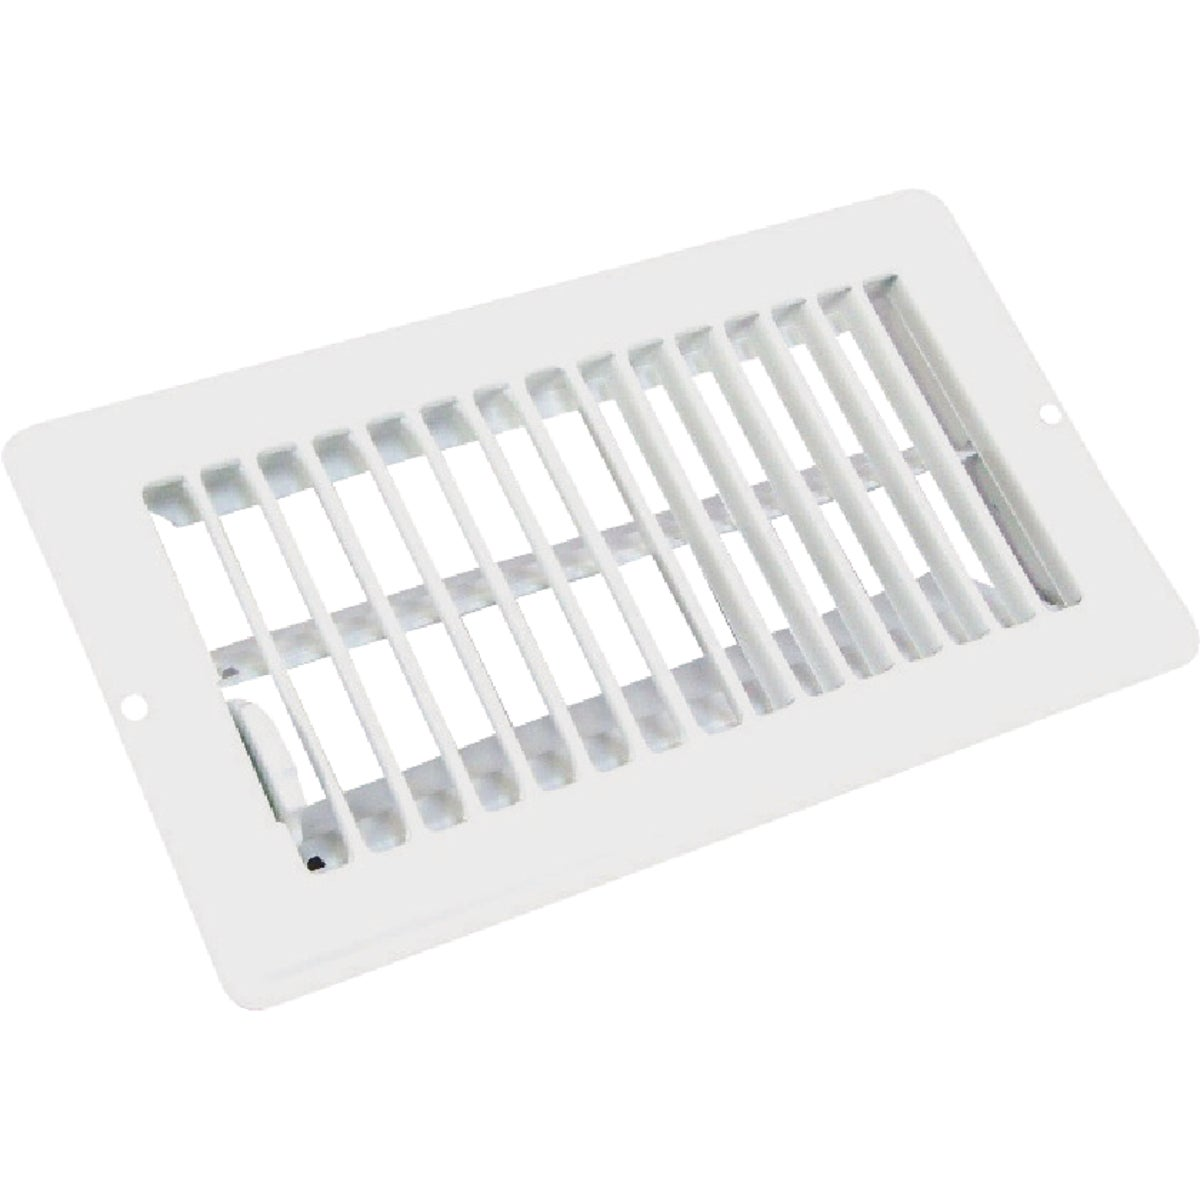 4X10 WHT FLOOR REGISTER - V-103WB by U S Hardware